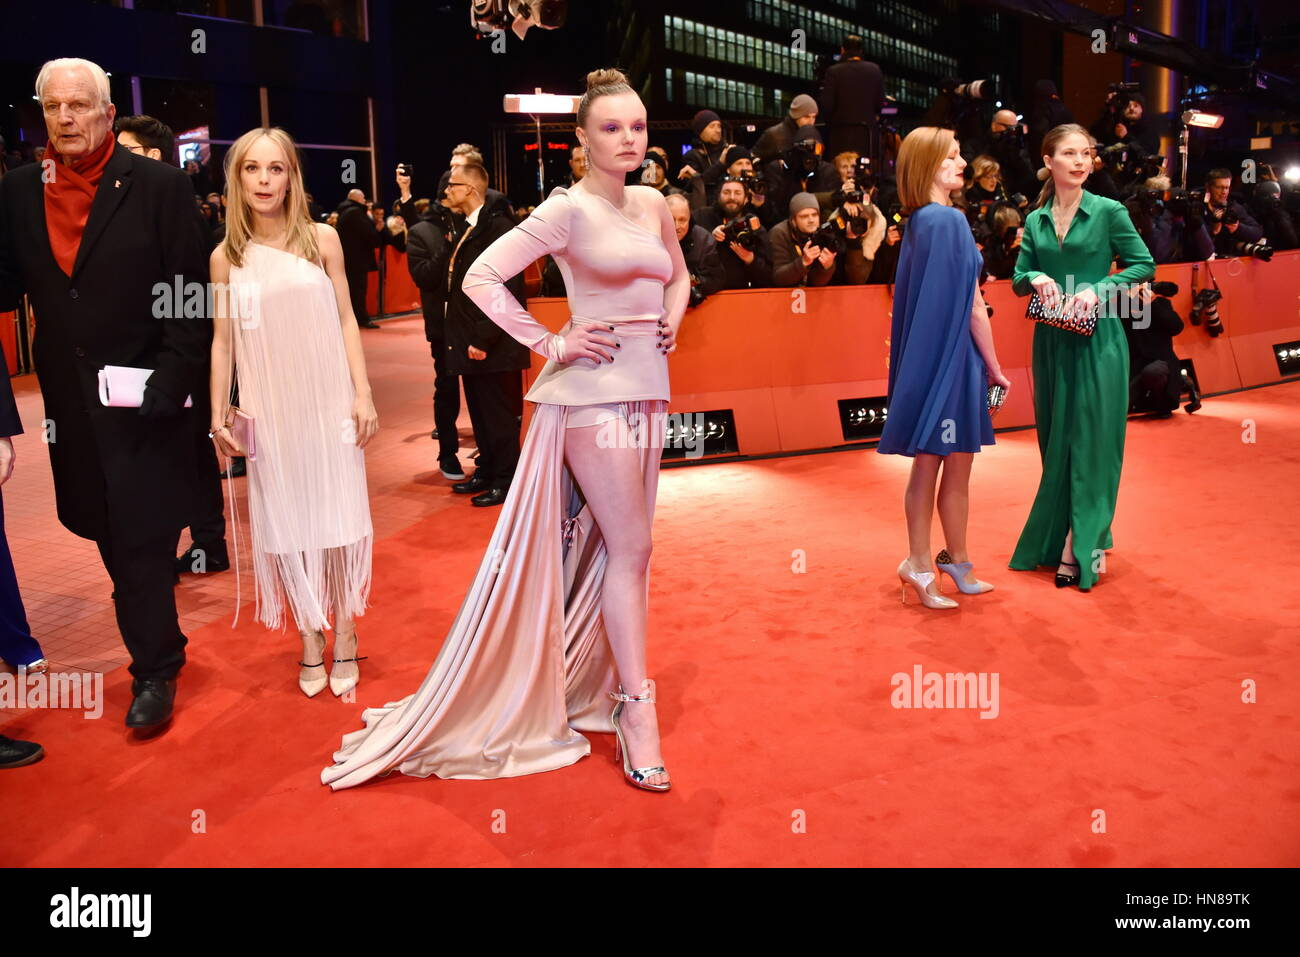 Berlinale 2016 Roter Teppich Maria Dragus Stockfotos And Maria Dragus Bilder Alamy